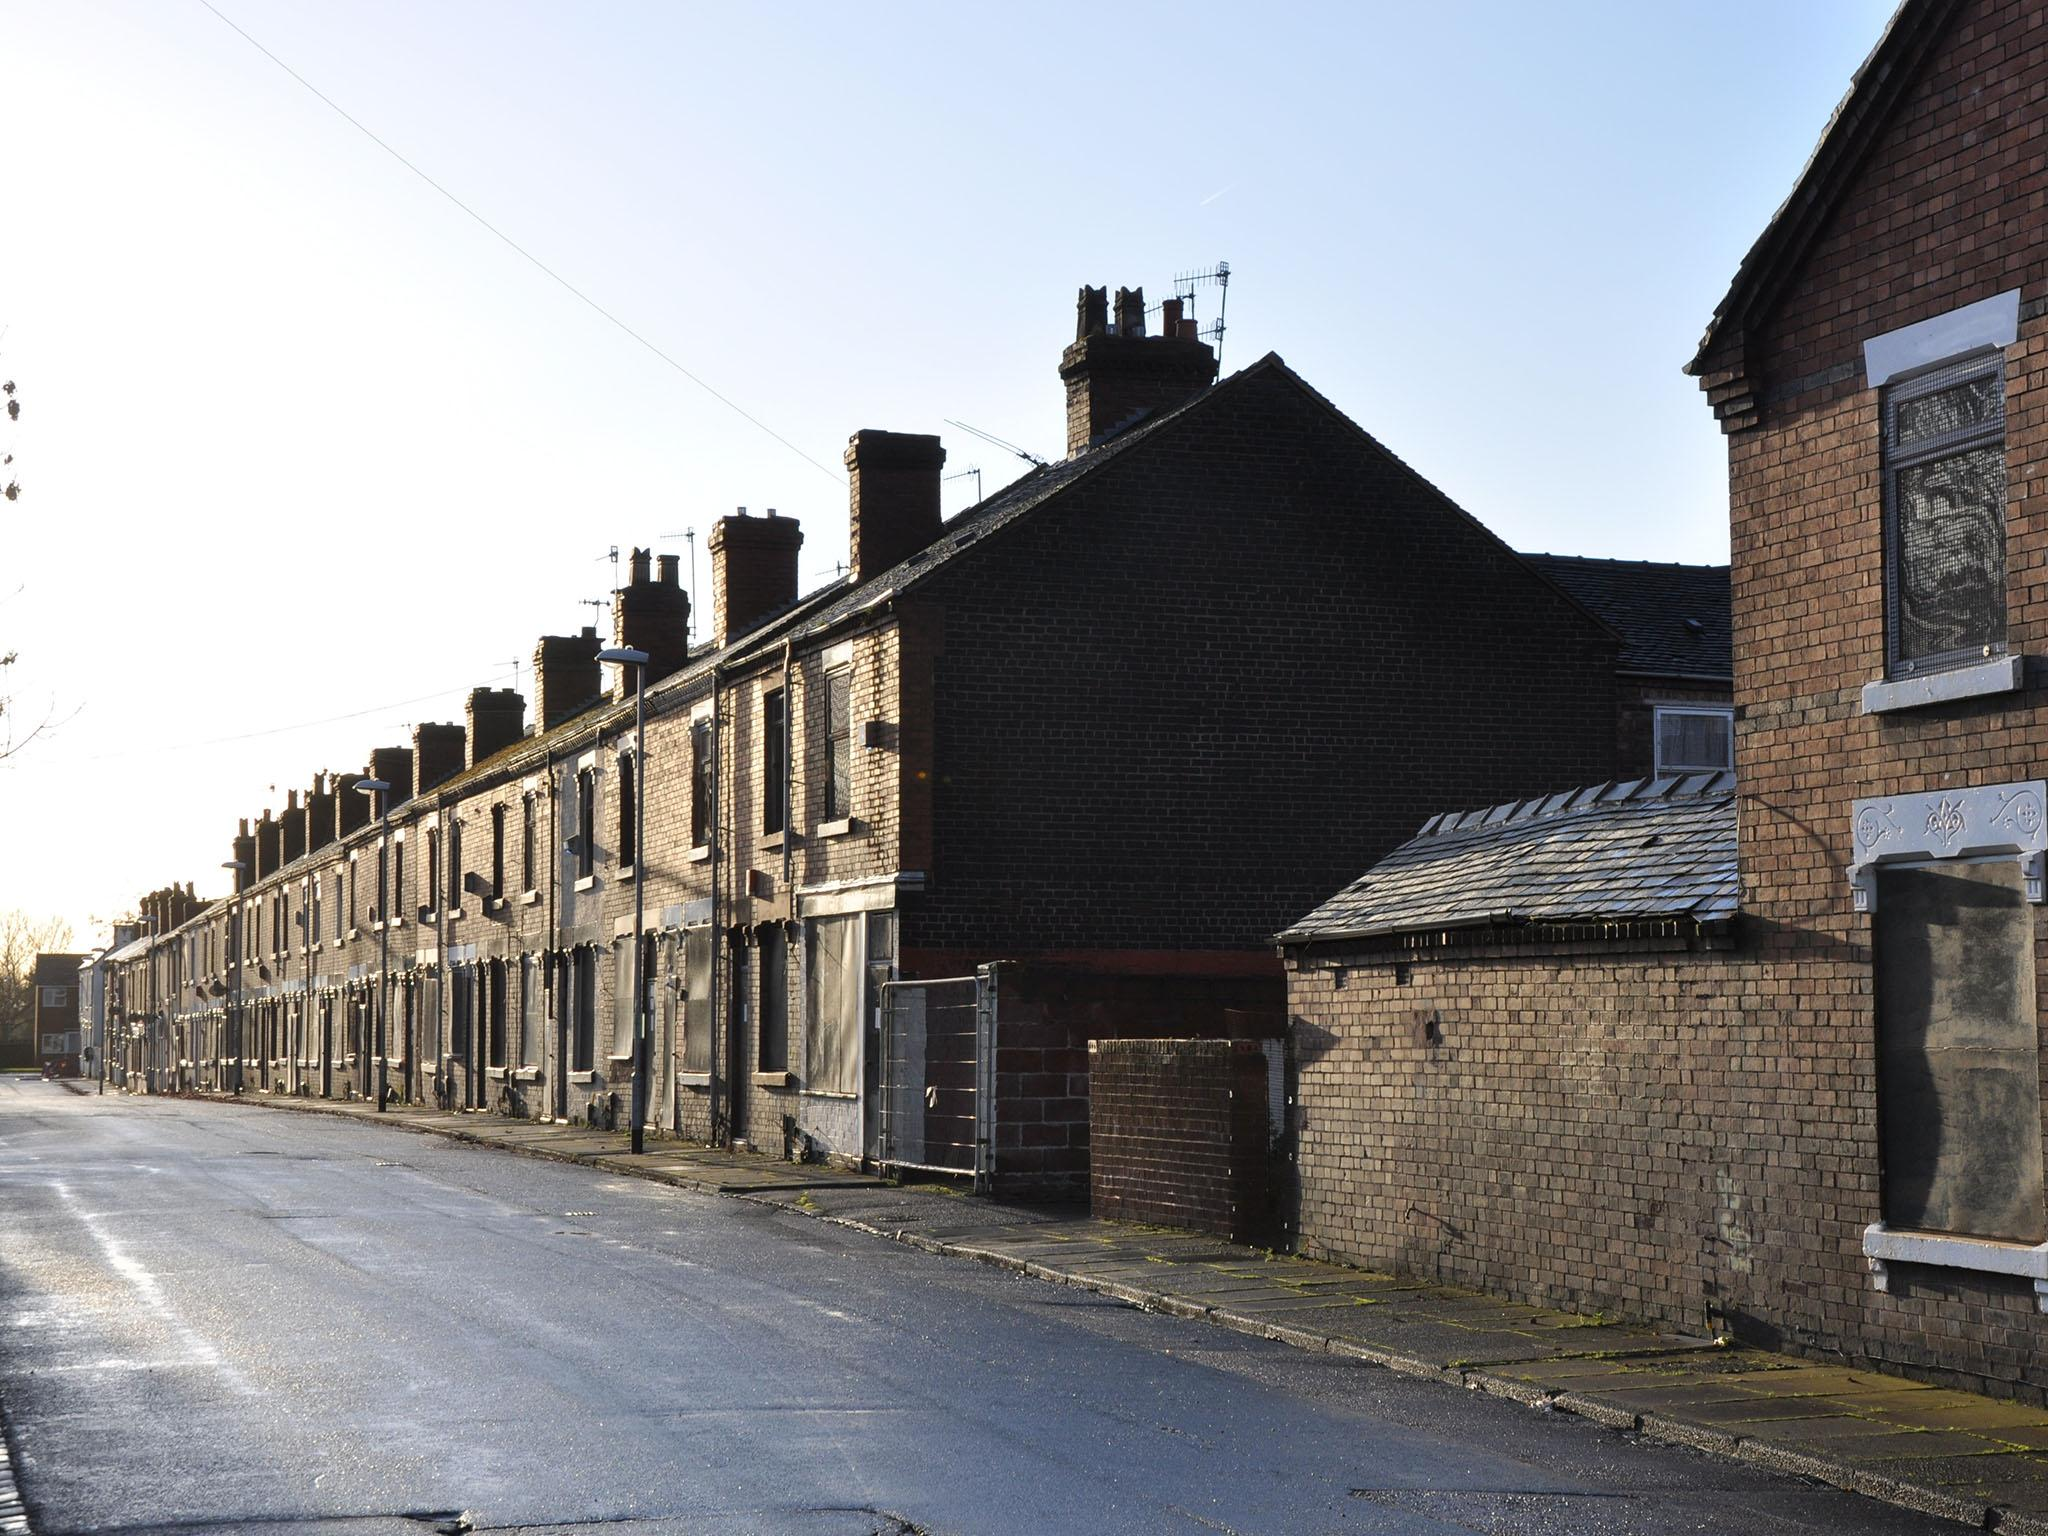 How selling homes for £1 empowers local councils to revive deprived communities